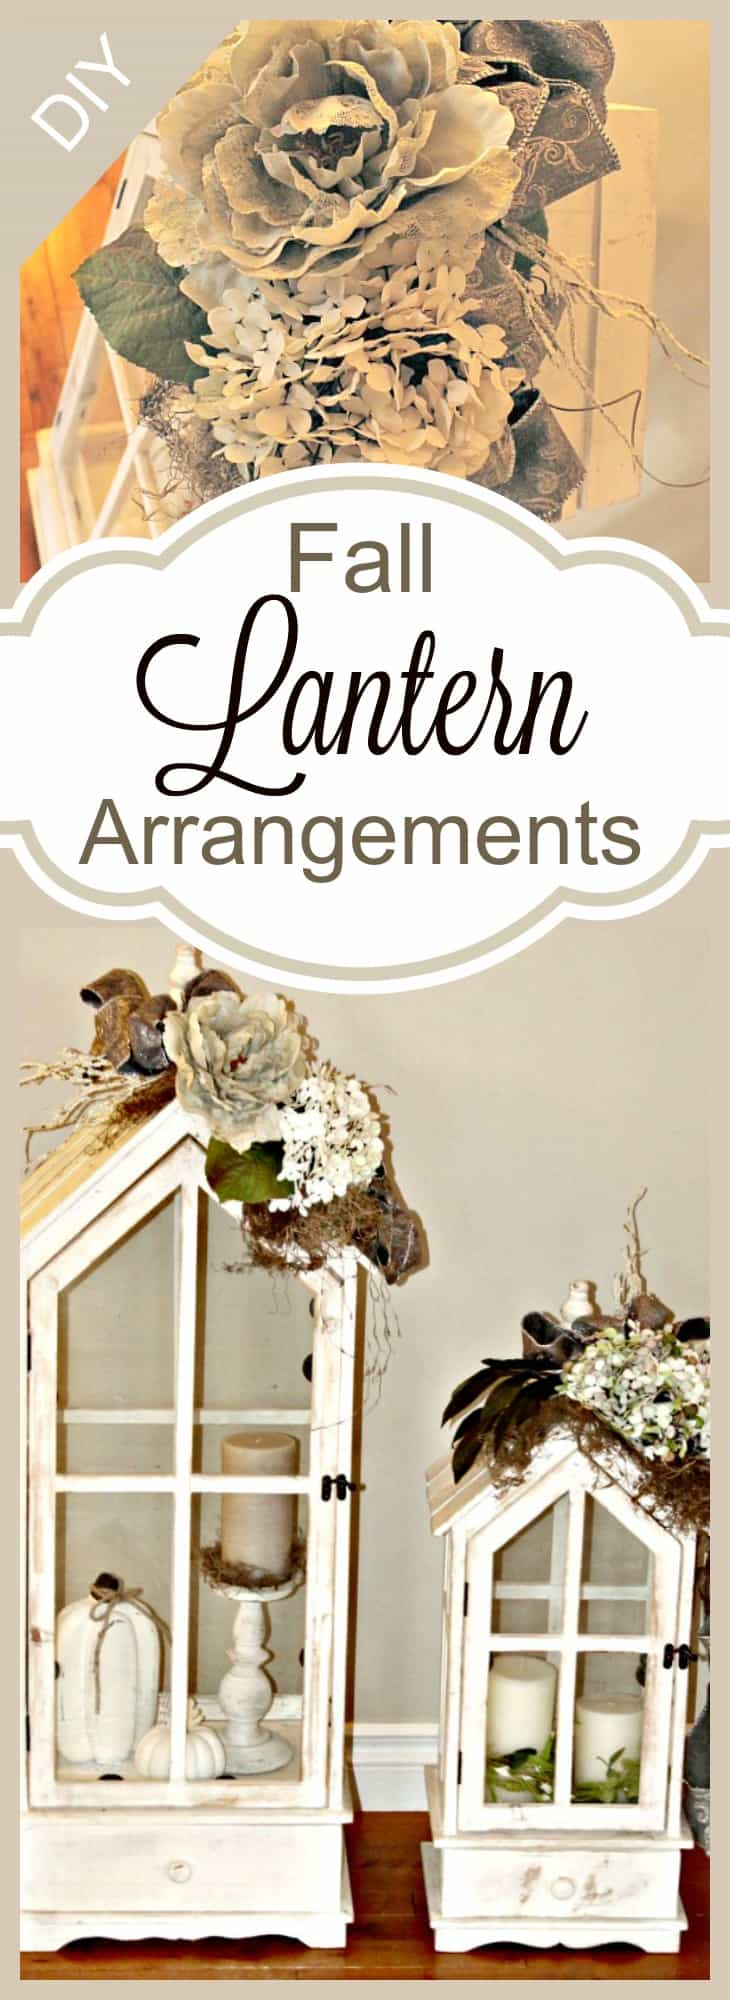 lantern flower arrangements, diy fall lanterns, diy fall decor,